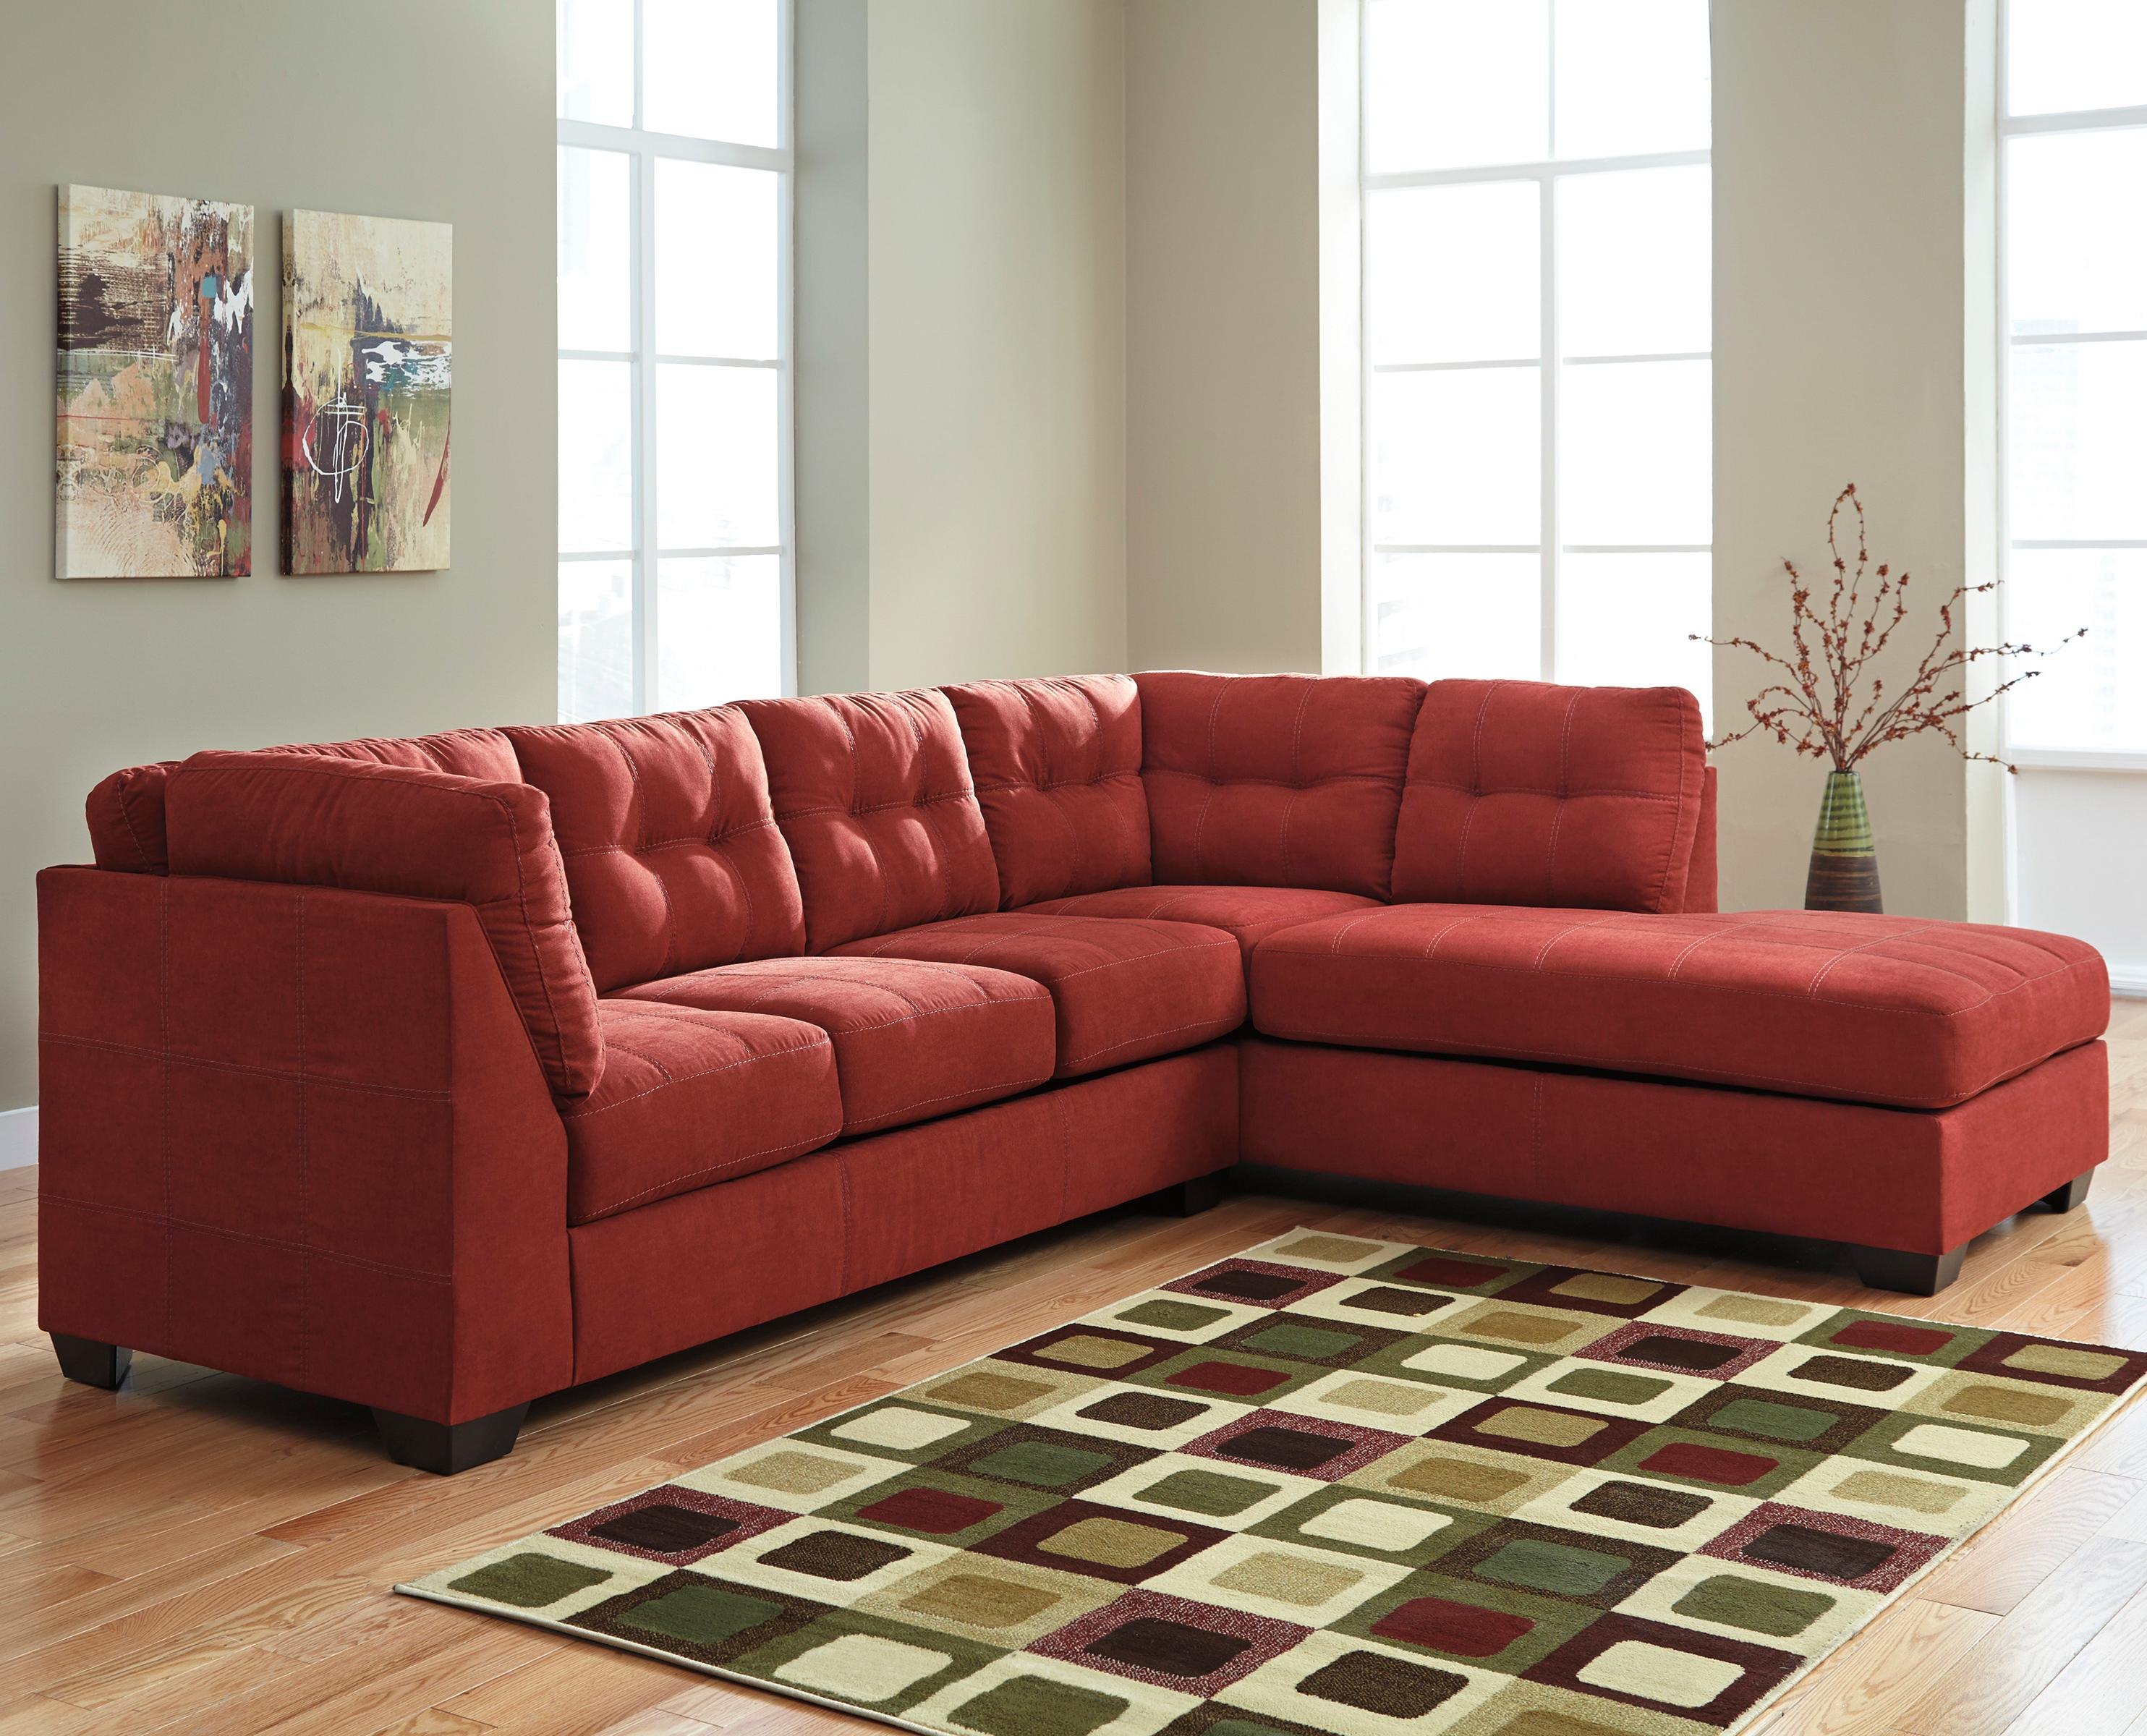 Benchcraft Maier - Sienna 2-Piece Sectional w/ Sleeper Sofa & Chaise - Item Number: 4520210+17